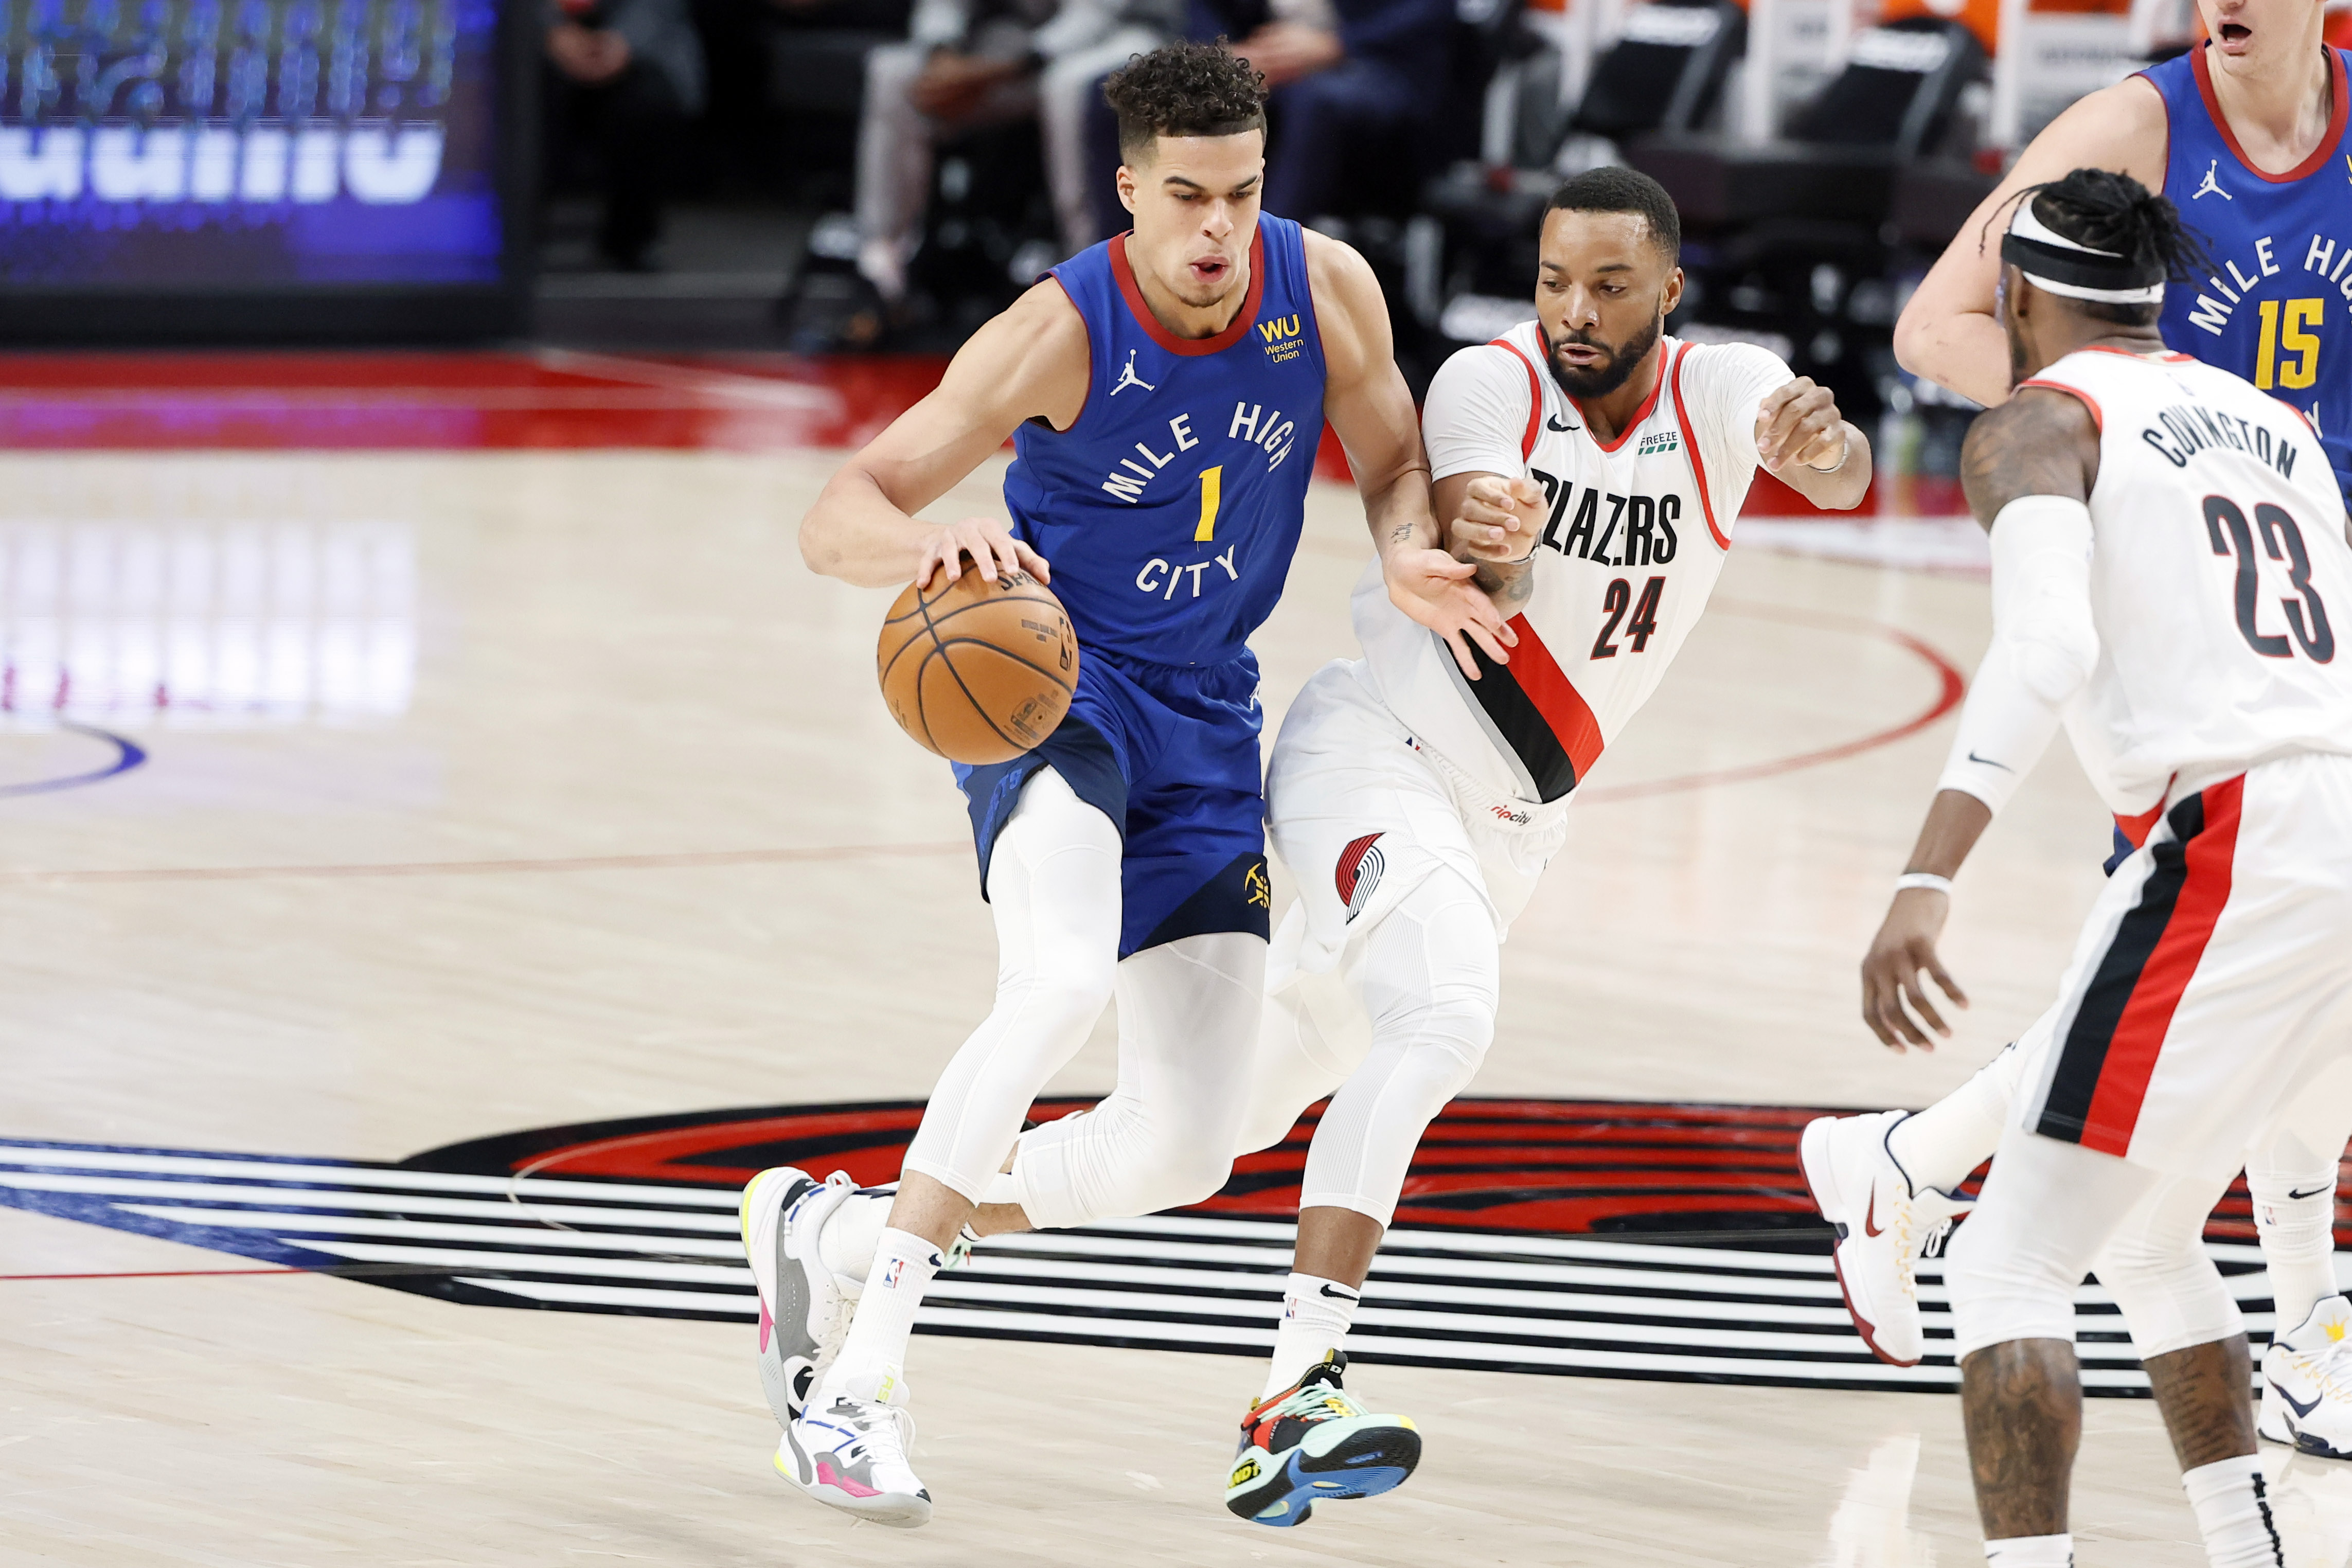 May 27, 2021; Portland, Oregon, USA; Denver Nuggets small forward Michael Porter Jr. (1) dribbles the ball as Portland Trail Blazers small forward Norman Powell (24) defends during the first half of game three in the first round of the 2021 NBA Playoffs at Moda Center. Mandatory Credit: Soobum Im-USA TODAY Sports